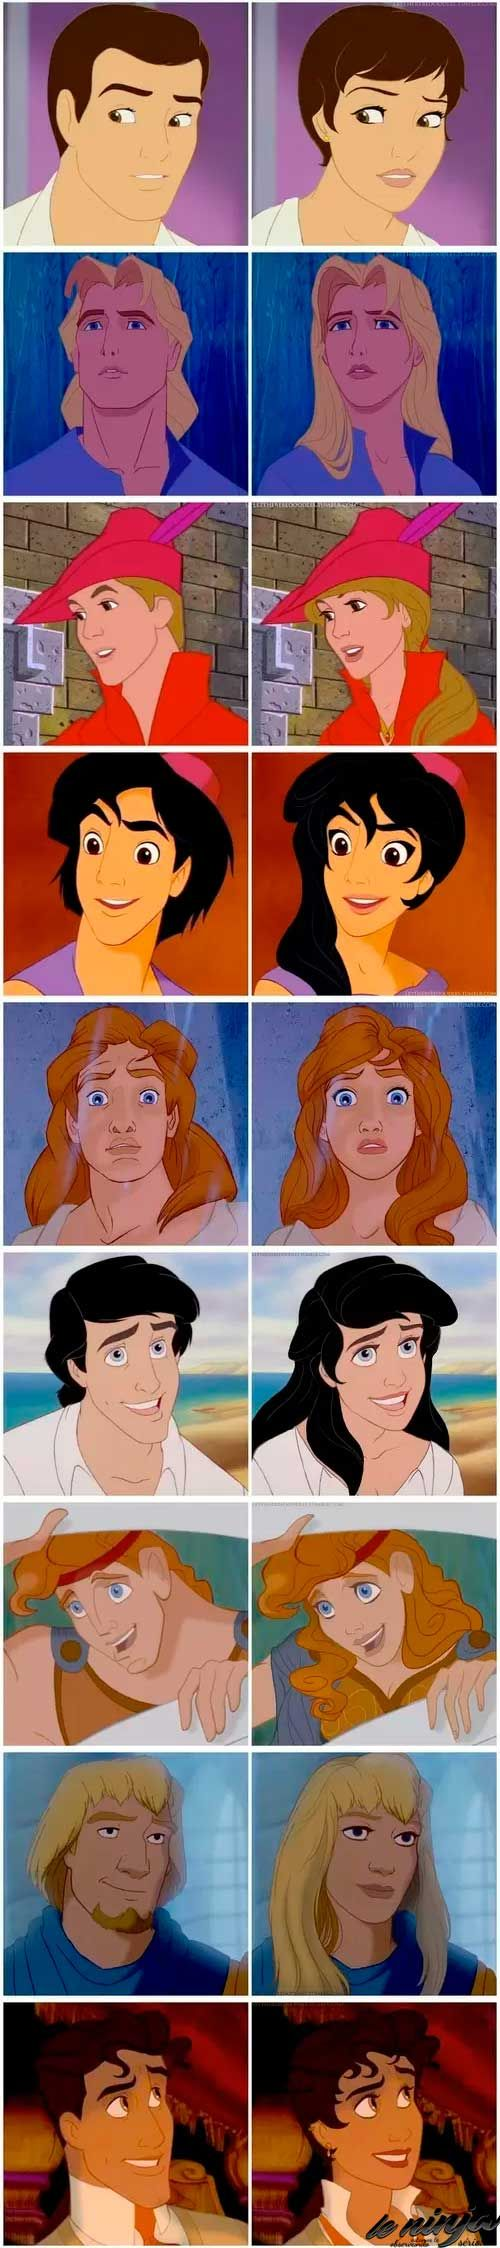 Disney Princes if they were Princesses